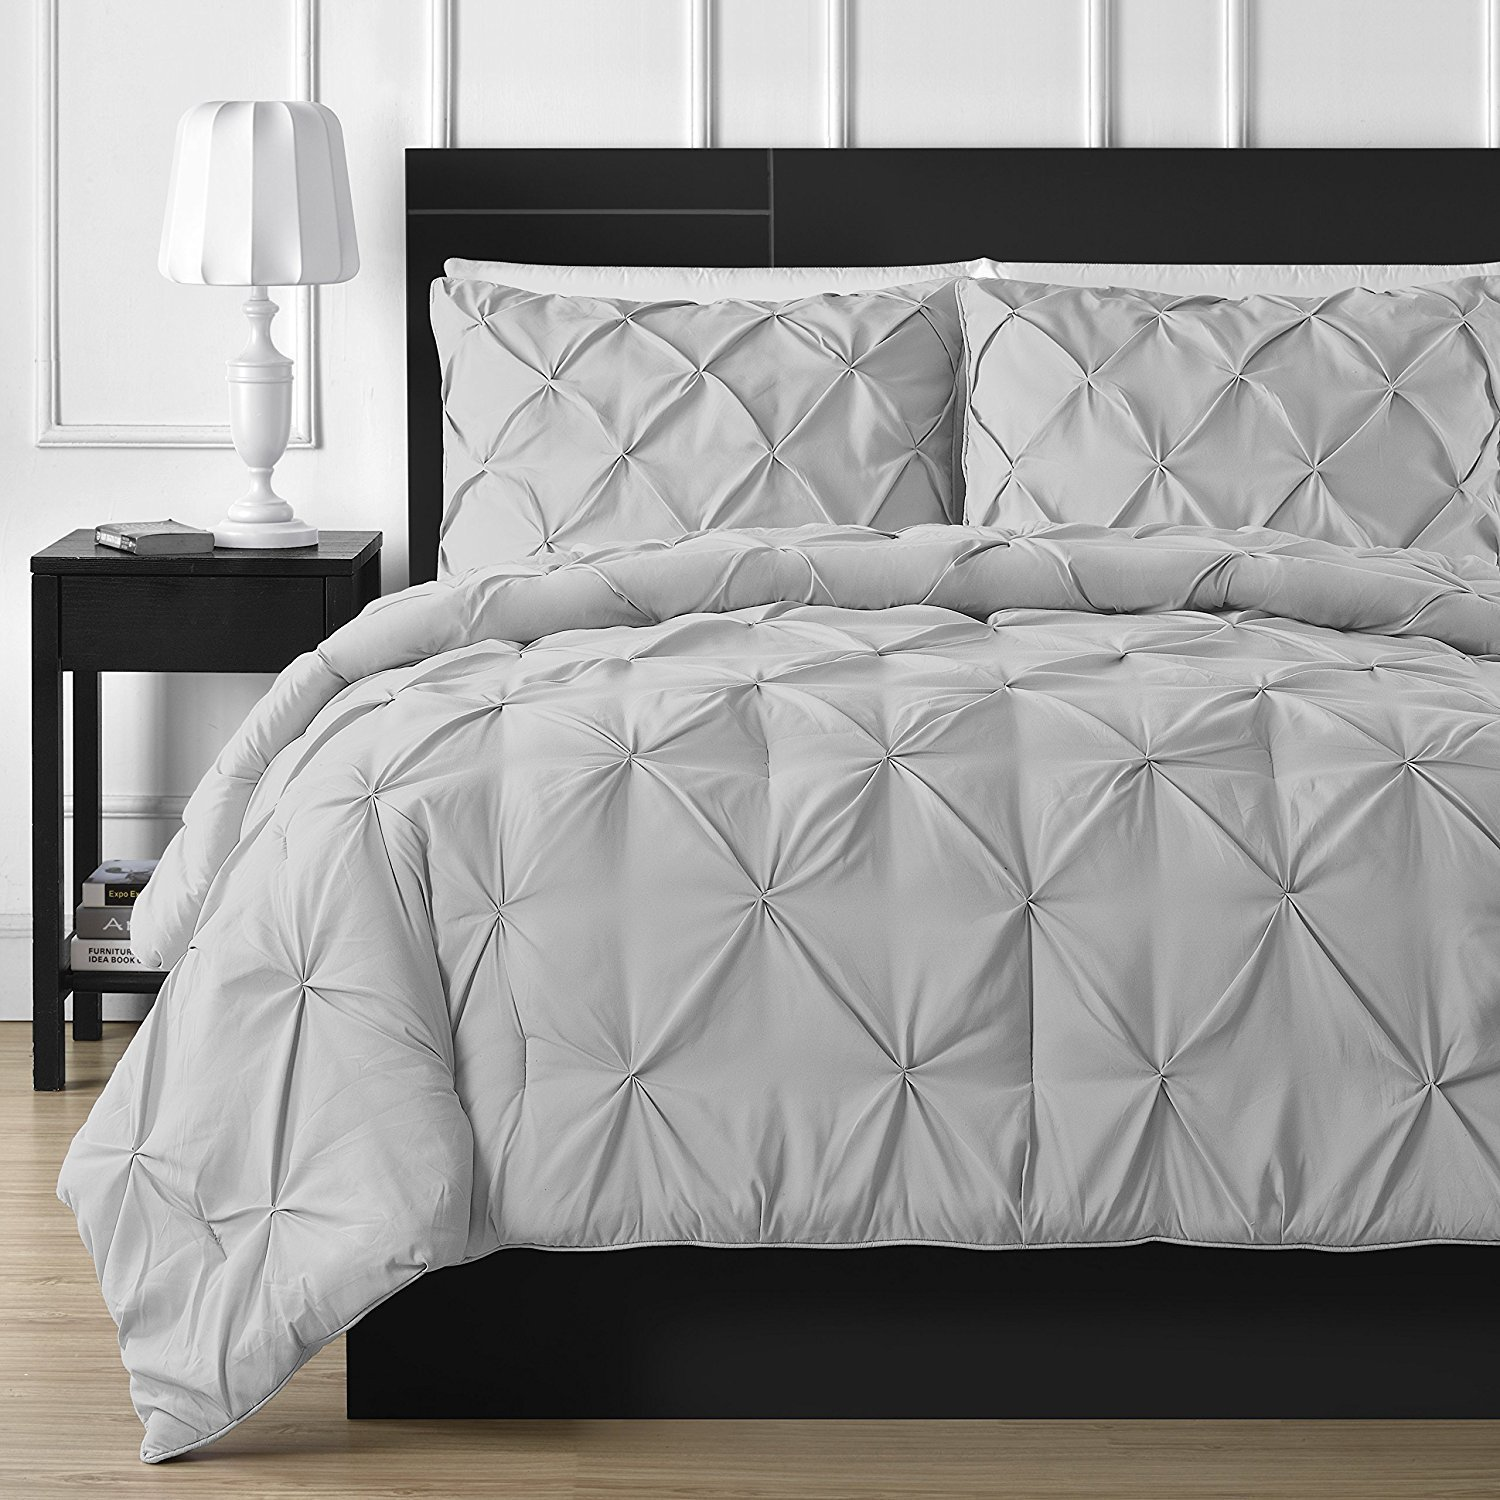 Bedding Kraft Soft Reliable Luxurious Pinch Pleated Duvet Cover 100% Egyptian Cotton 800 TC Stain Resistant & Hypoallergenic Comforter Cover (Oversized King (98 x 120 Inch) (1-Piece), Silver Grey)